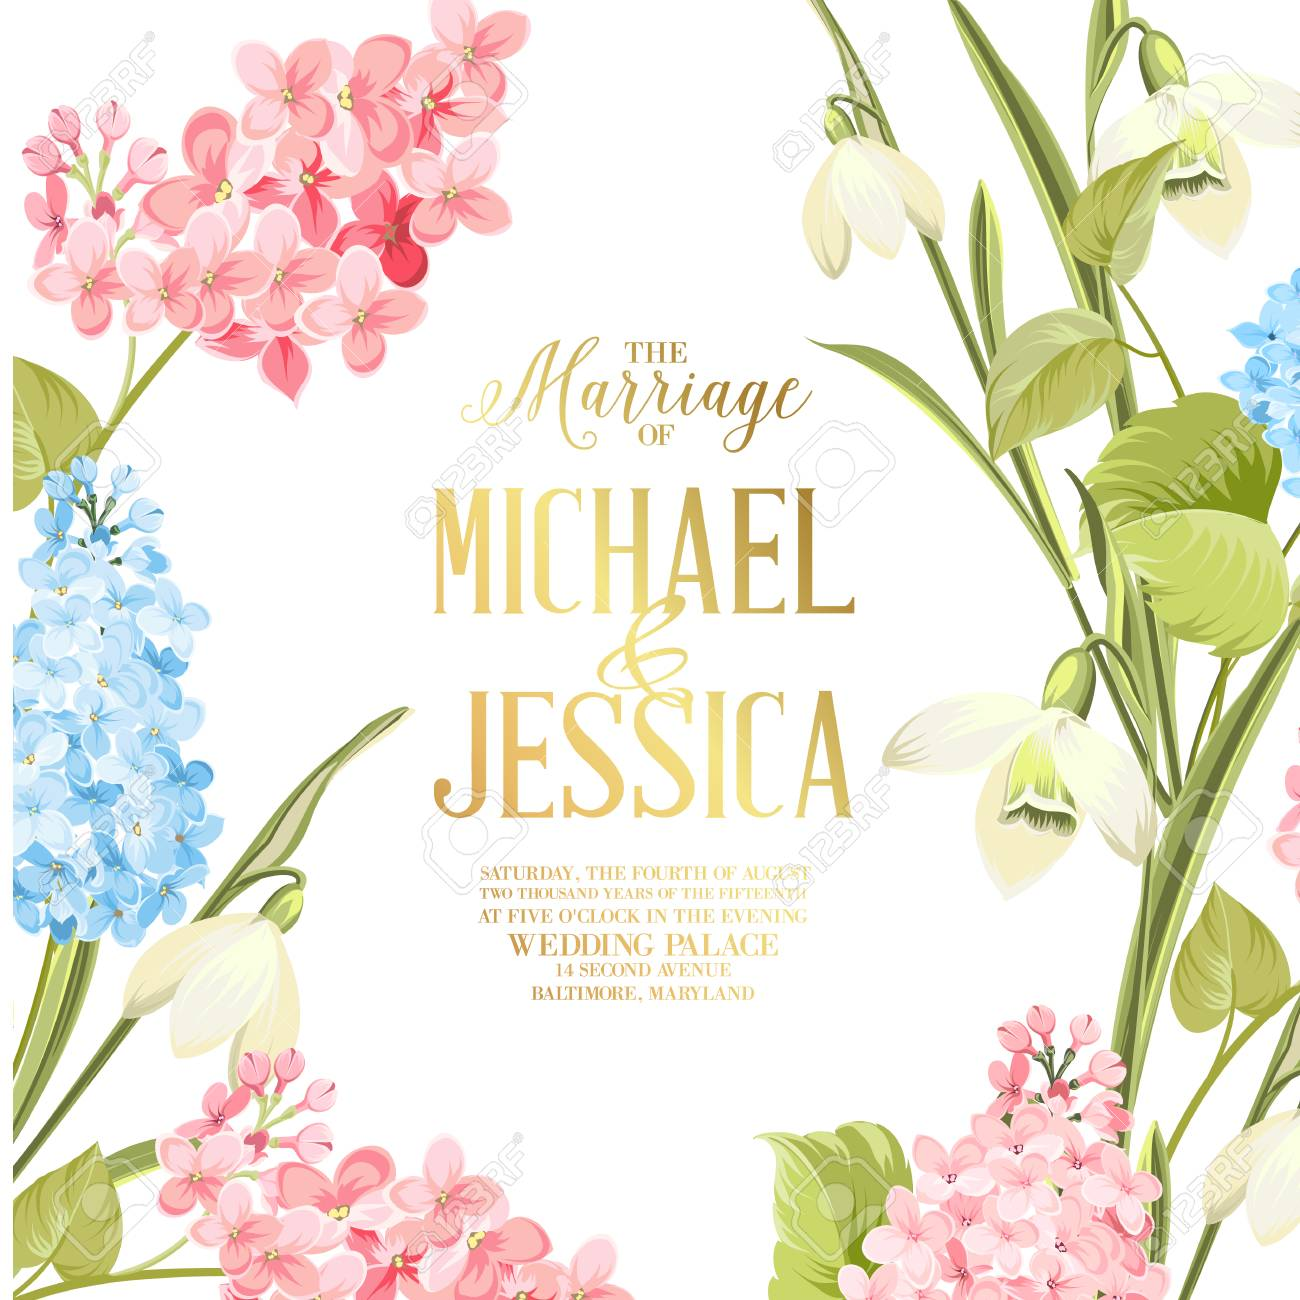 Marriage Invitation Card Wedding Invitation With Spring Flowers